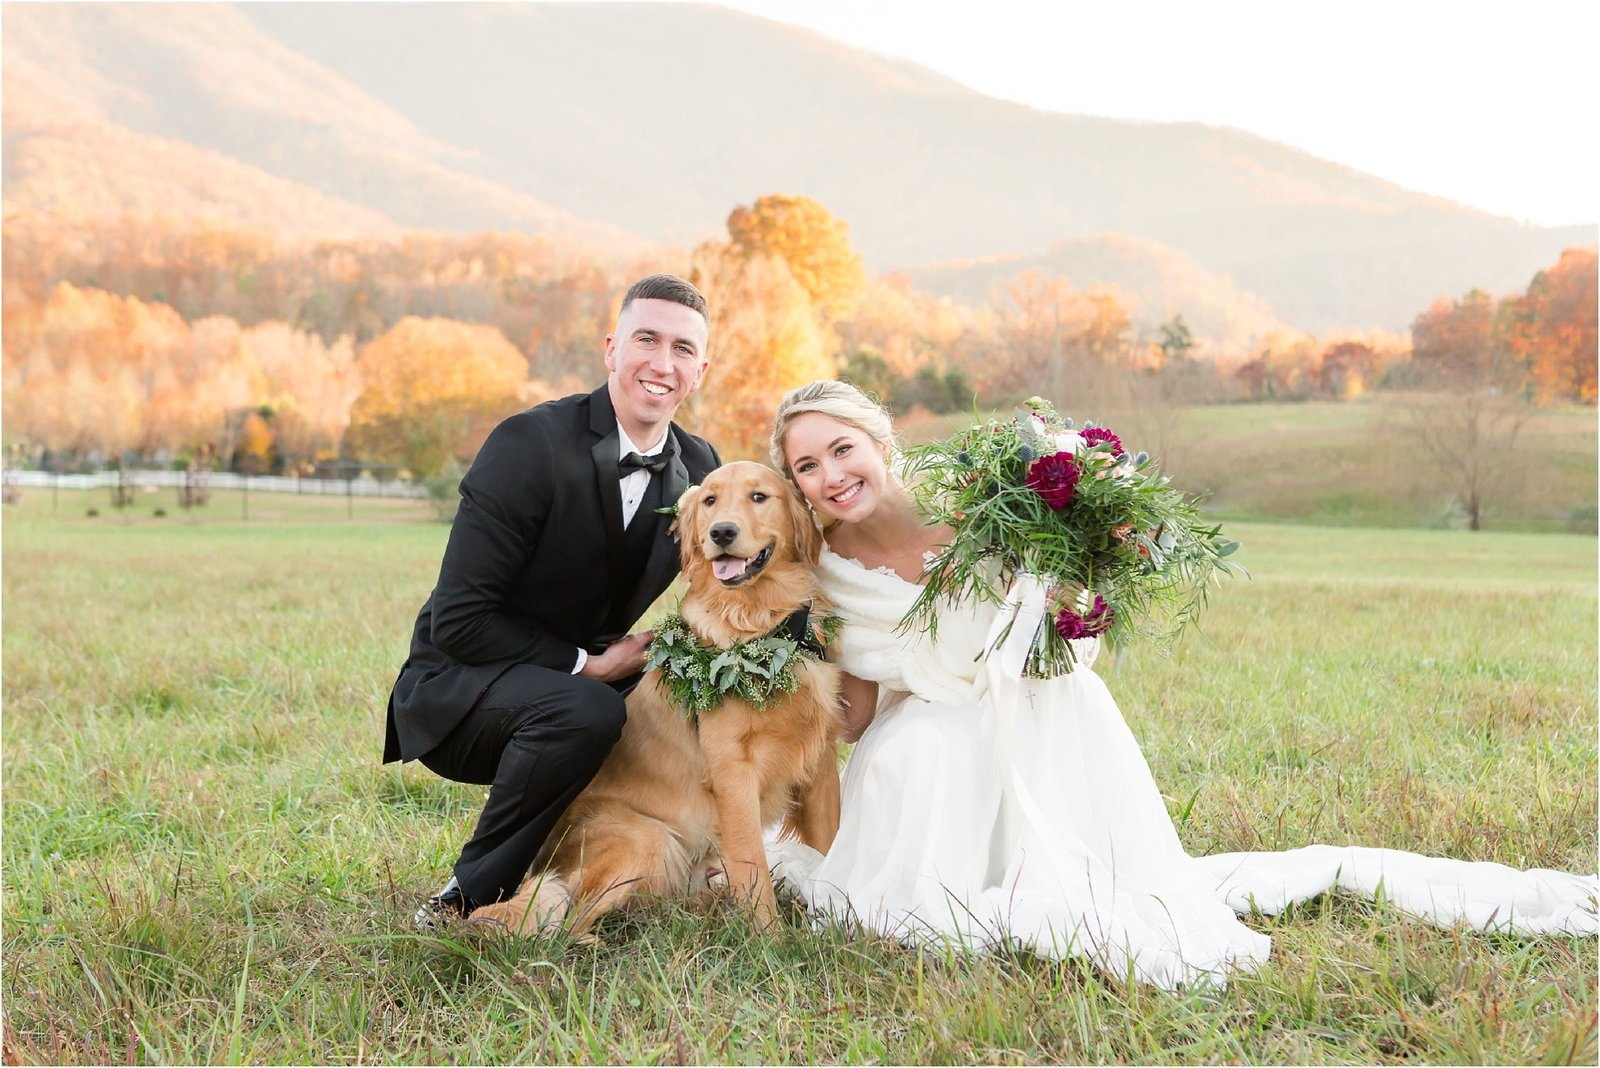 akingslodgeweddingpigeonforgeweddingsmokymountainsweddingmikayleeandian102157